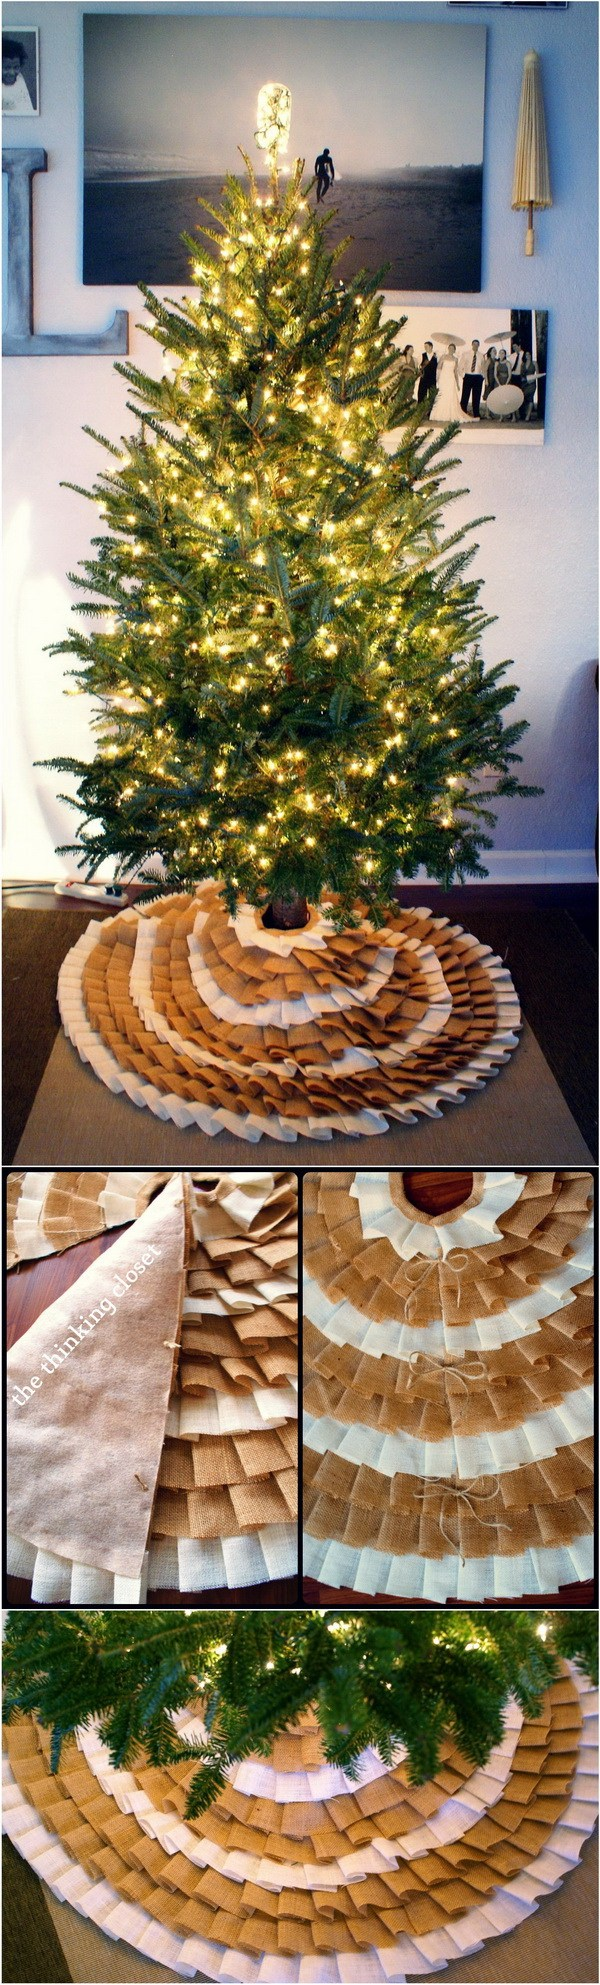 DIY No Sew Ruffle Christmas Tree Skirt.